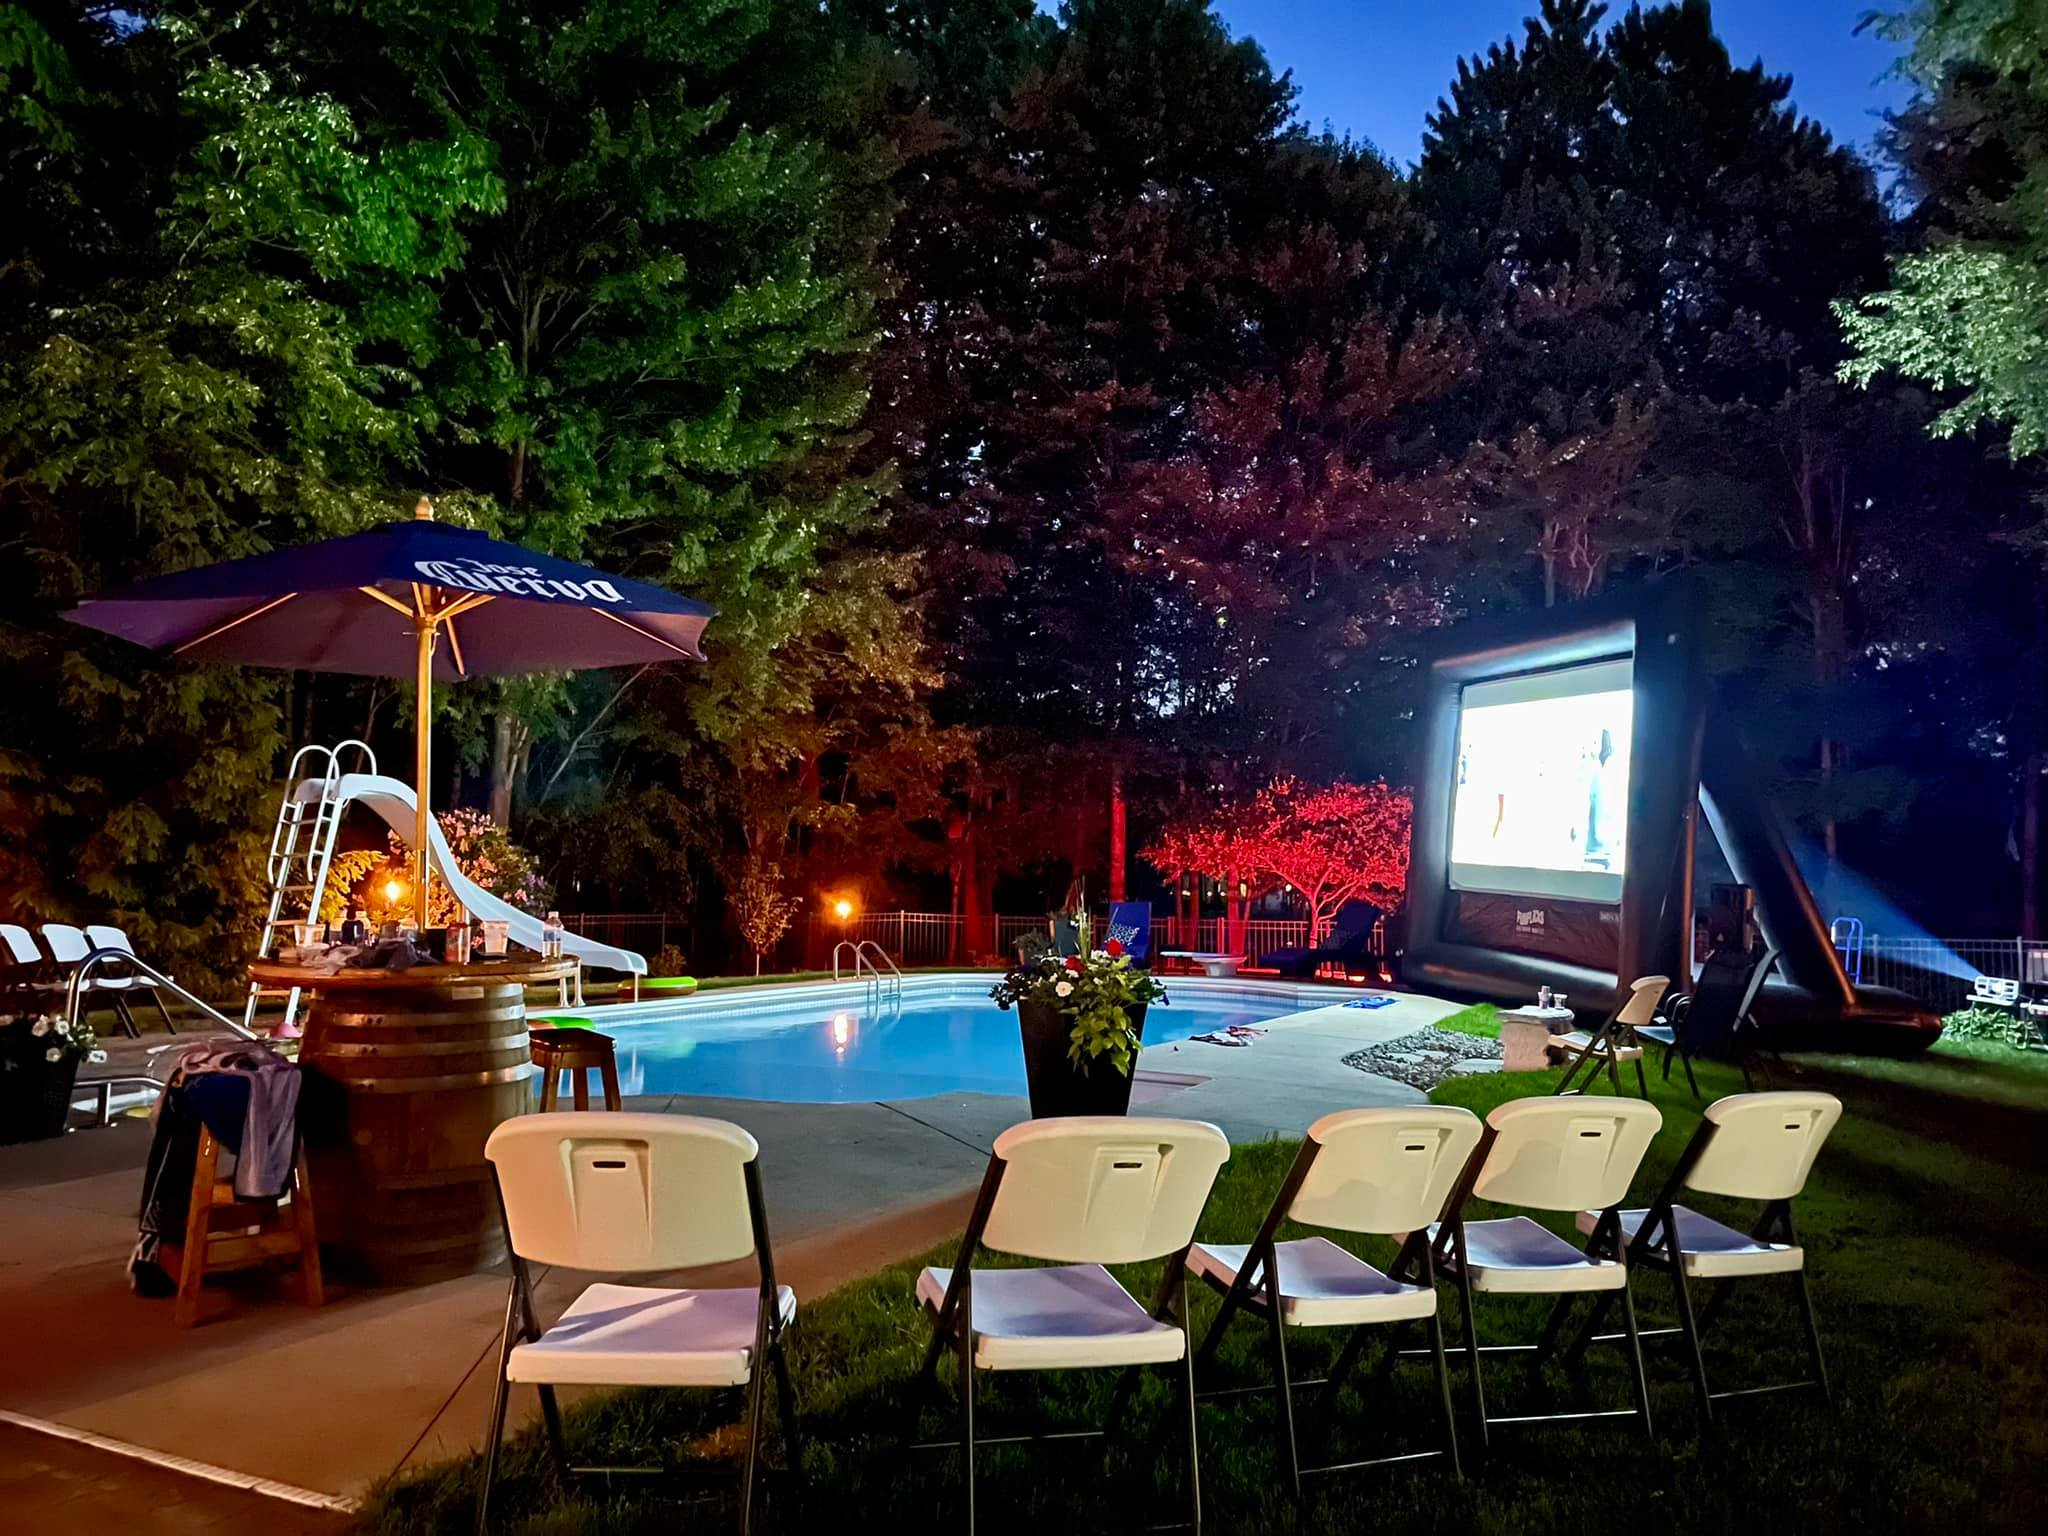 Backyard pool party theme including a movie screen next to the swimming pool